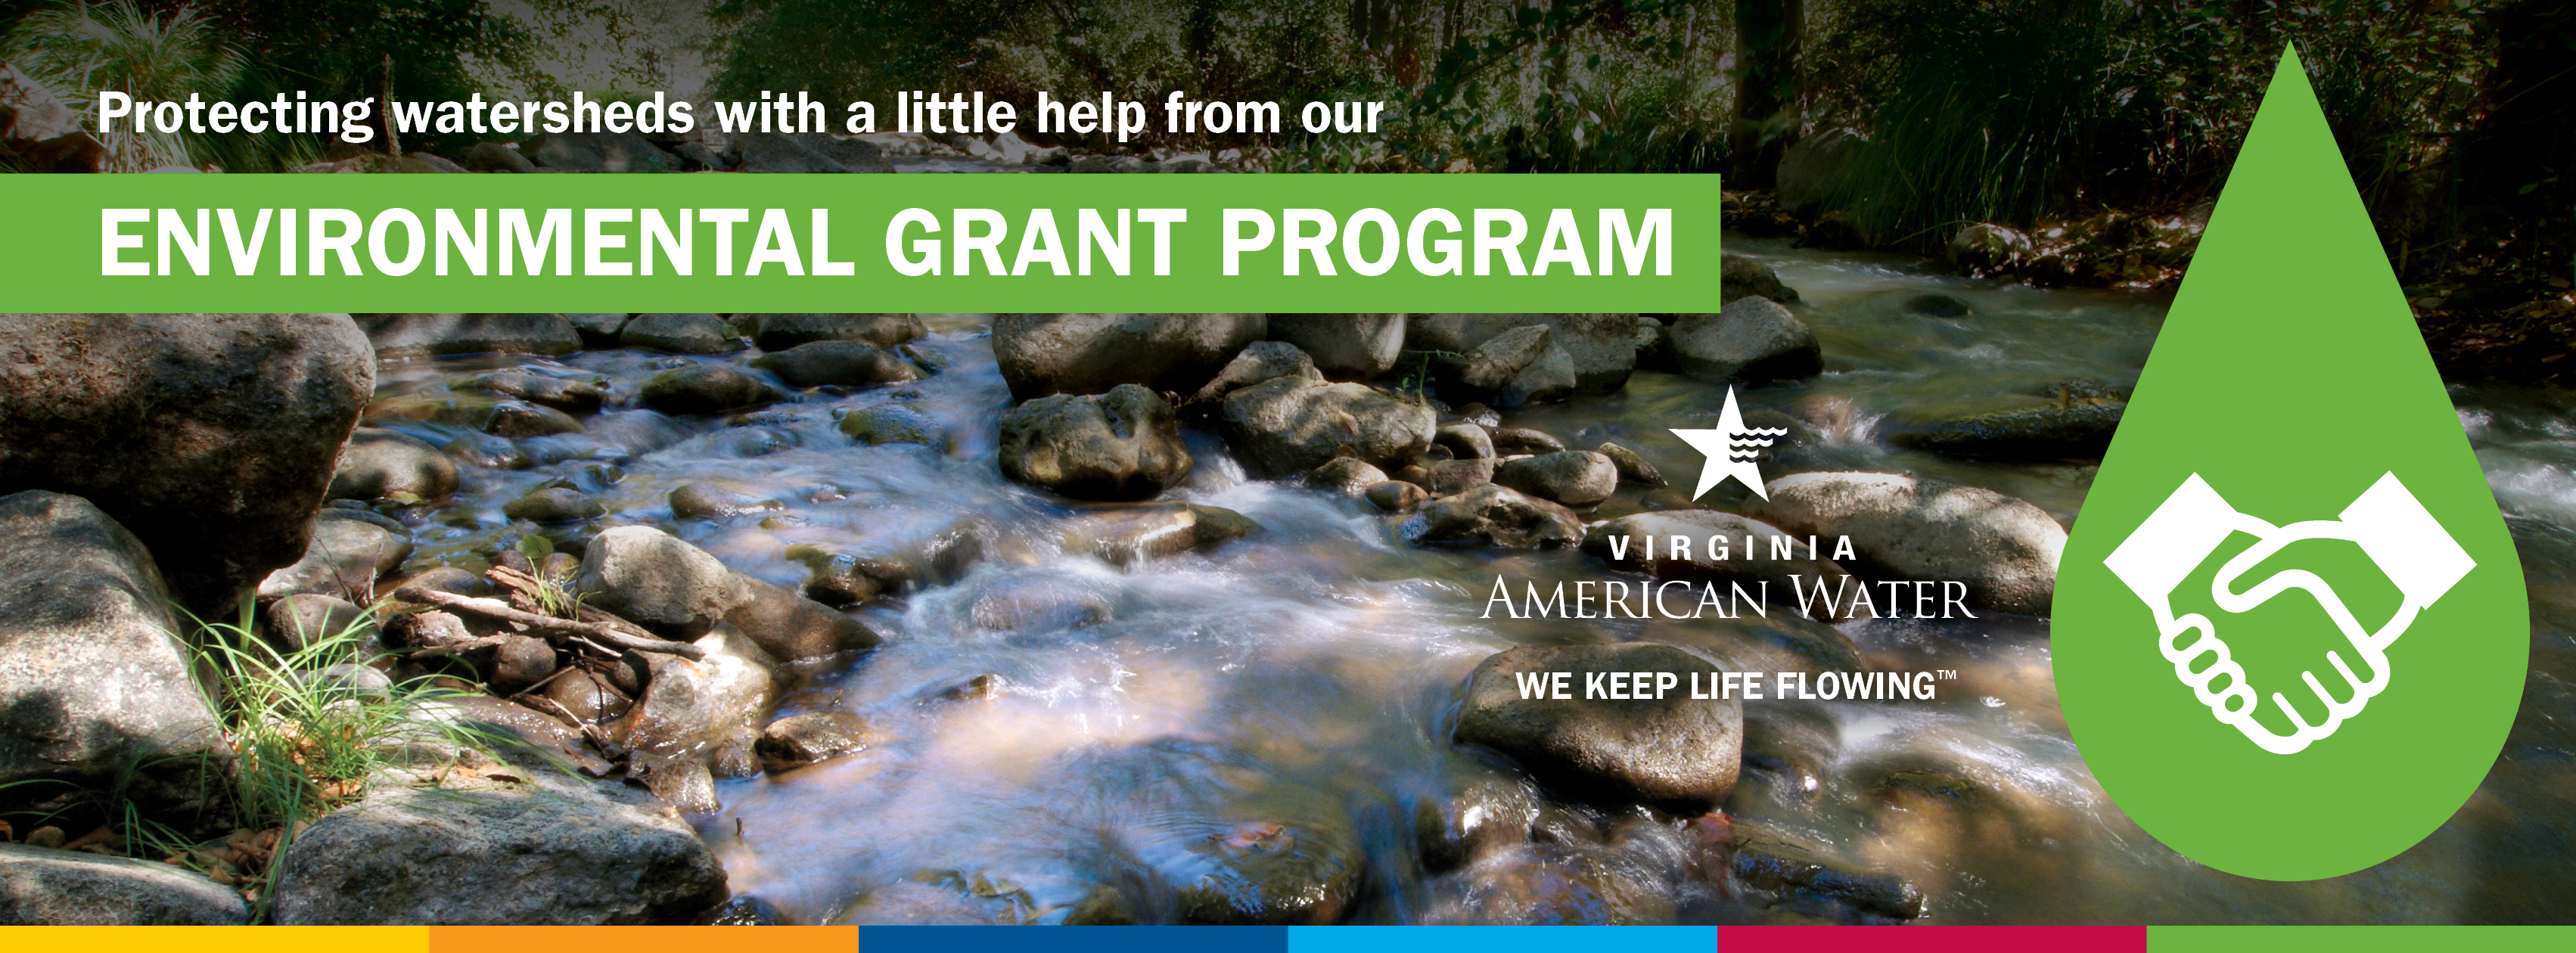 Environmental Grant - FB Timeline Image - VA636838768802464220